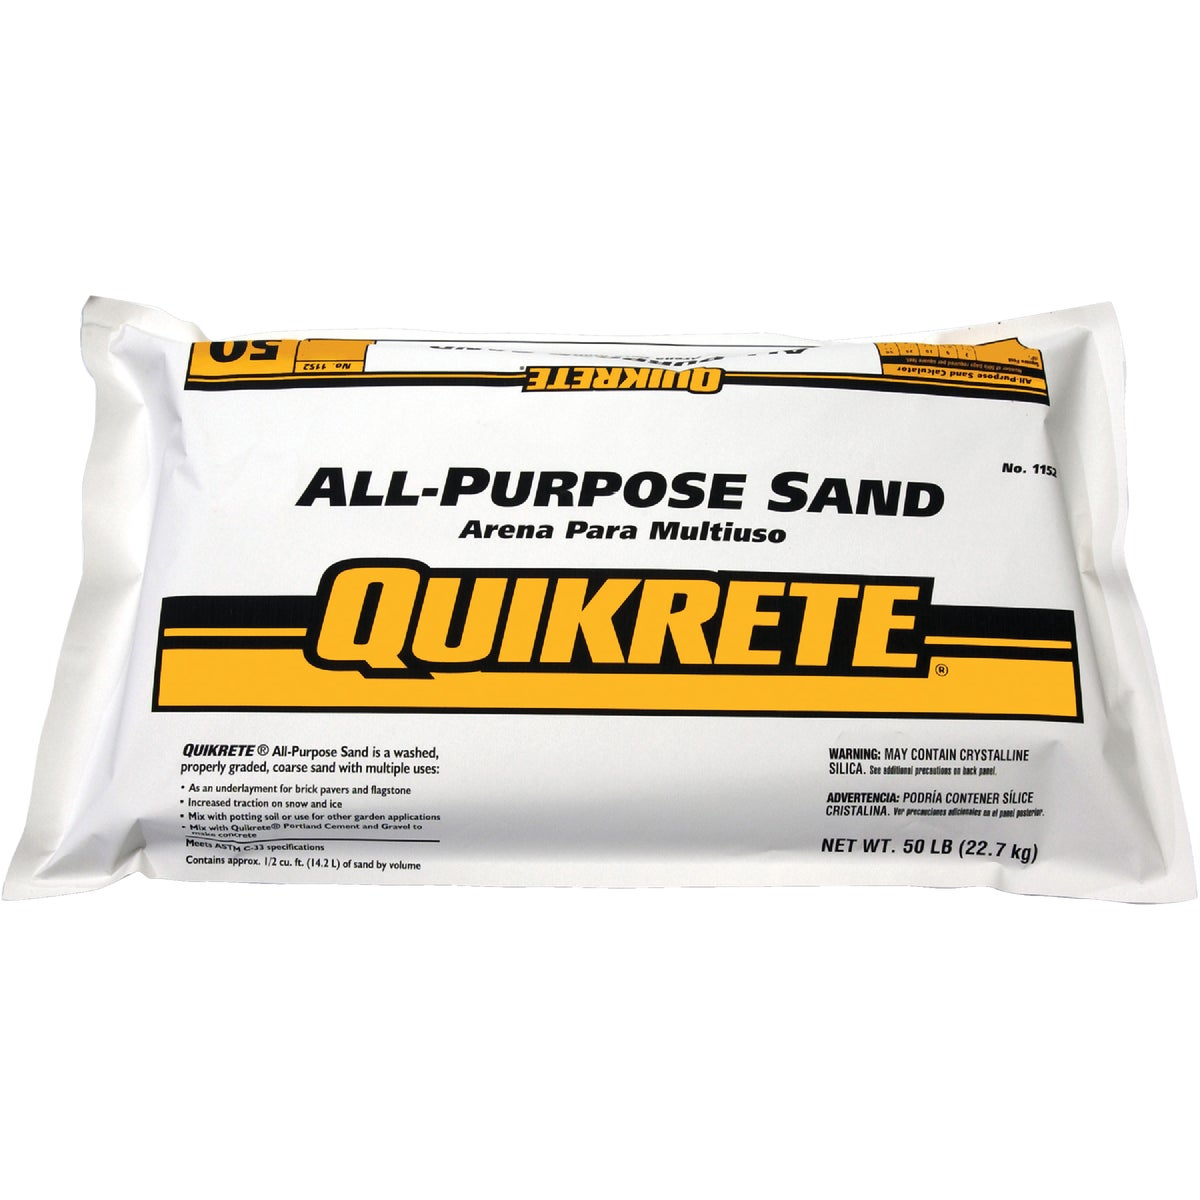 50LB ALL-PURPOSE SAND - 1152-53 by Quikrete Co